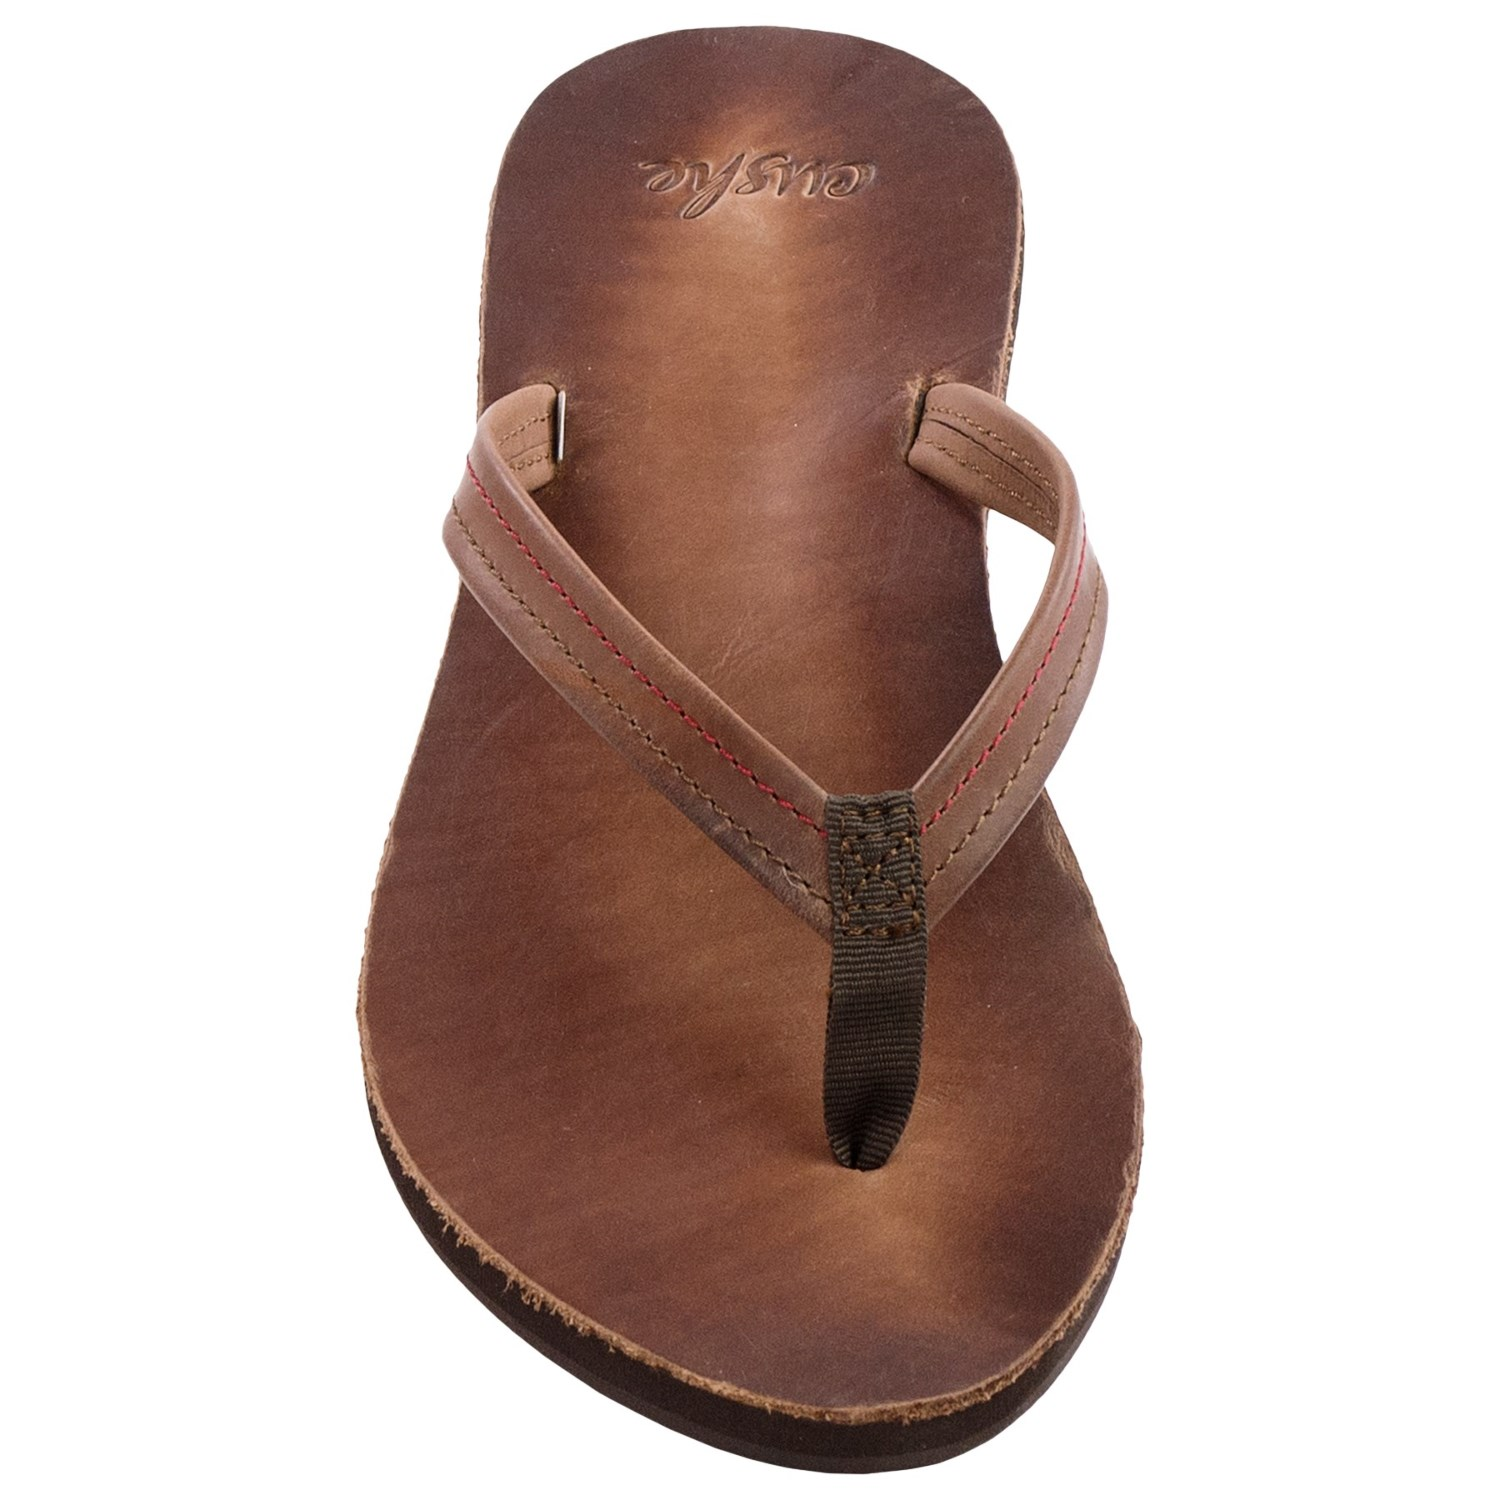 Women's Leather Rainbow® Sandals. Shop at dvlnpxiuf.ga and get Free 2-Day Air on orders over $ Comfortable, Stylish and Quality. Rainbow® Guarantee.